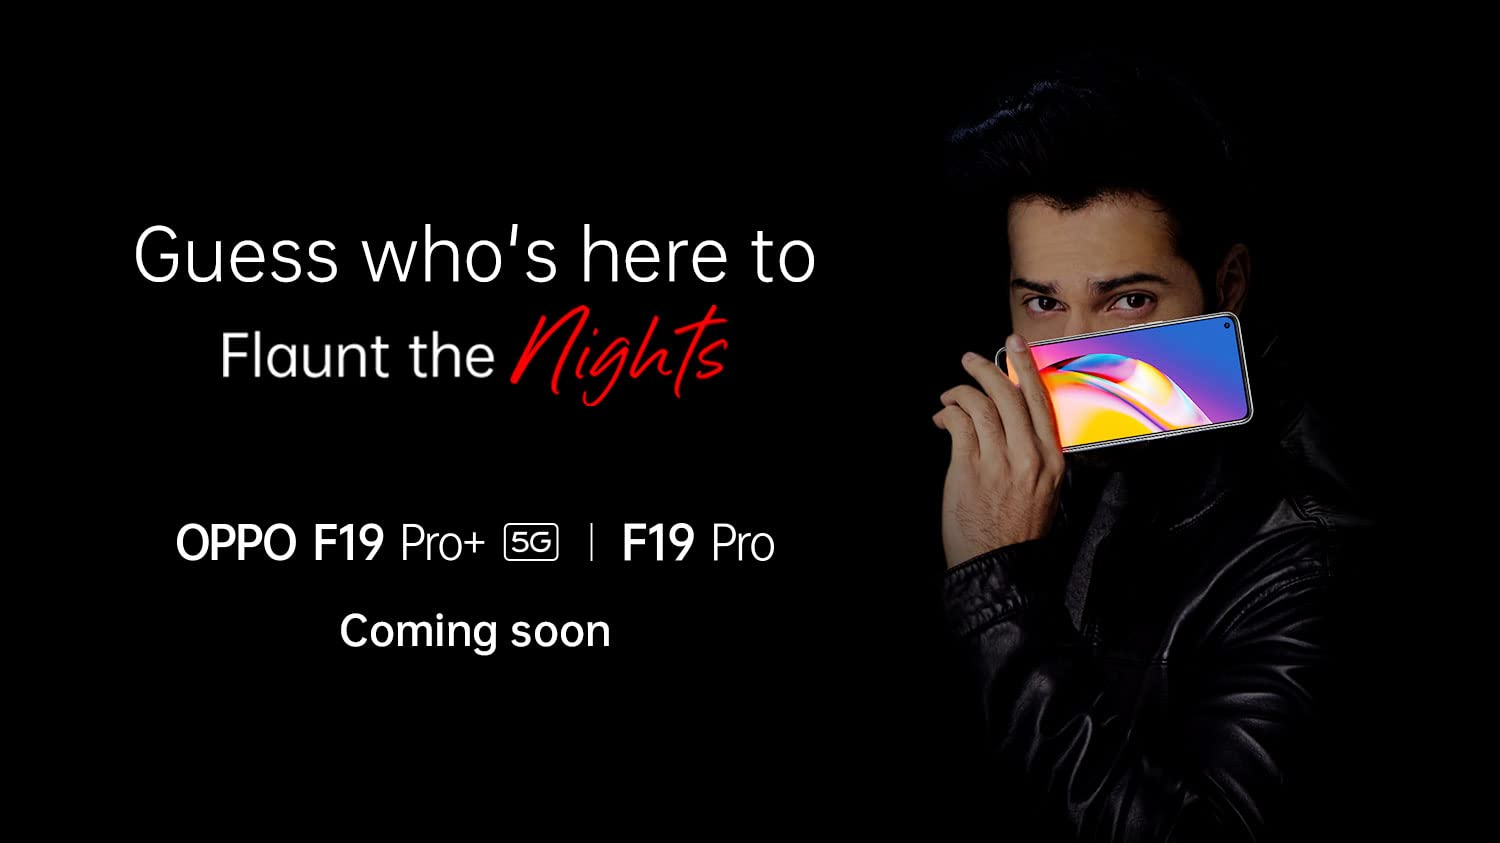 Oppo teases F19 Pro+ 5G, F19 Pro launch in India